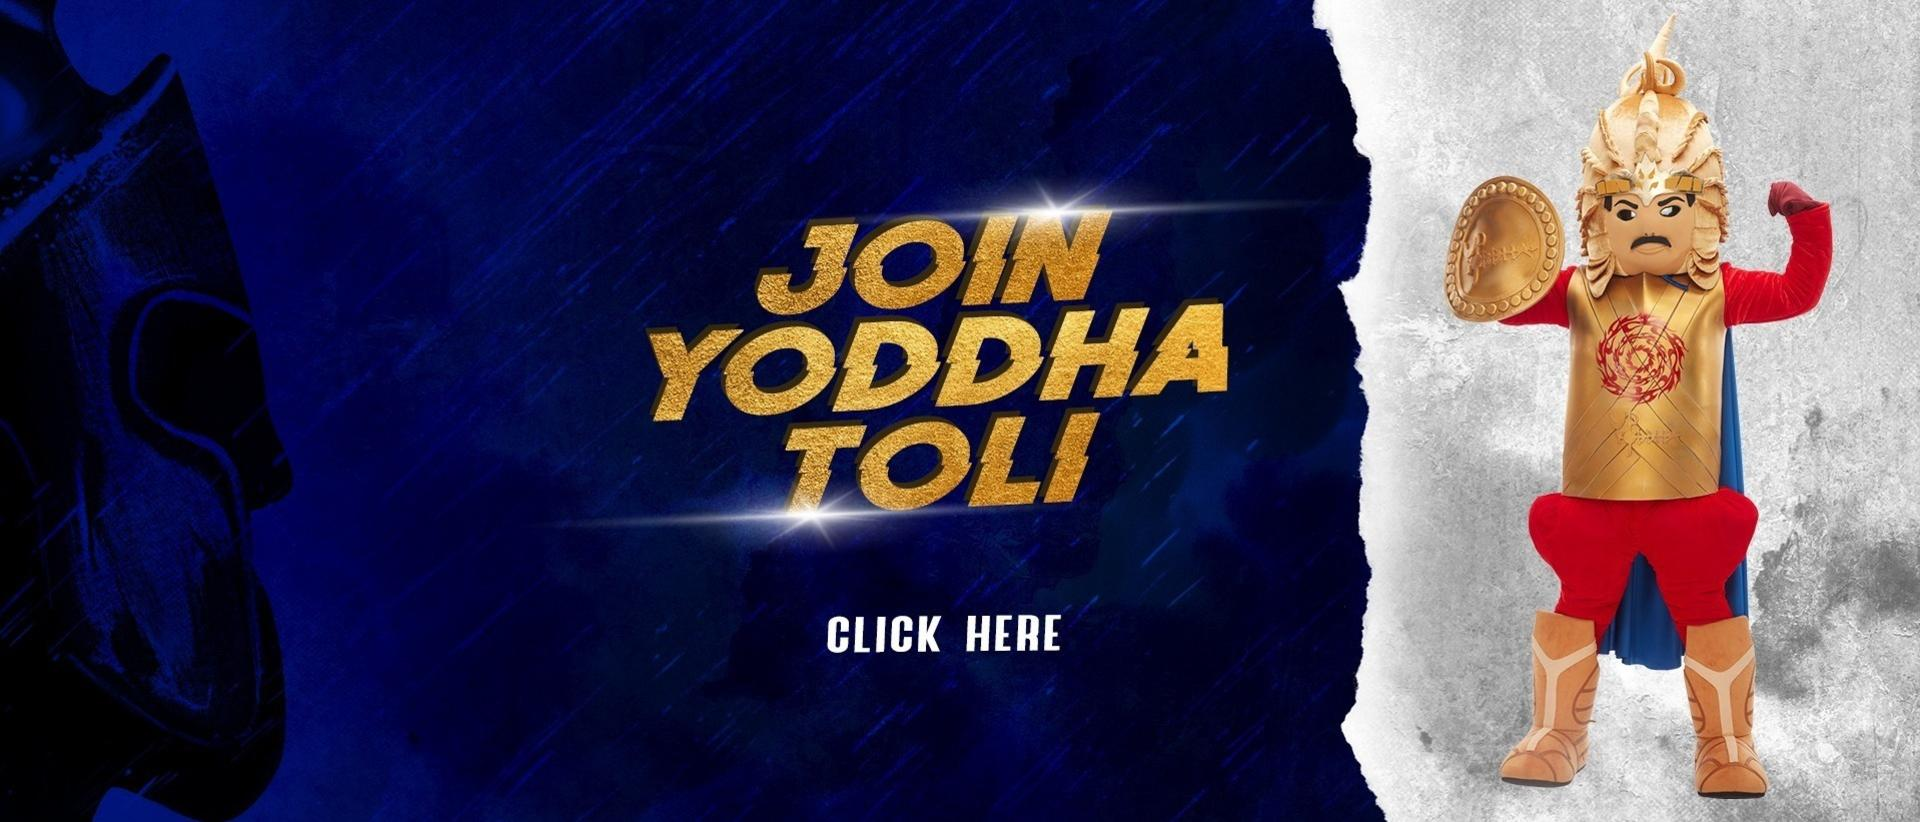 Join the Yoddha Toli